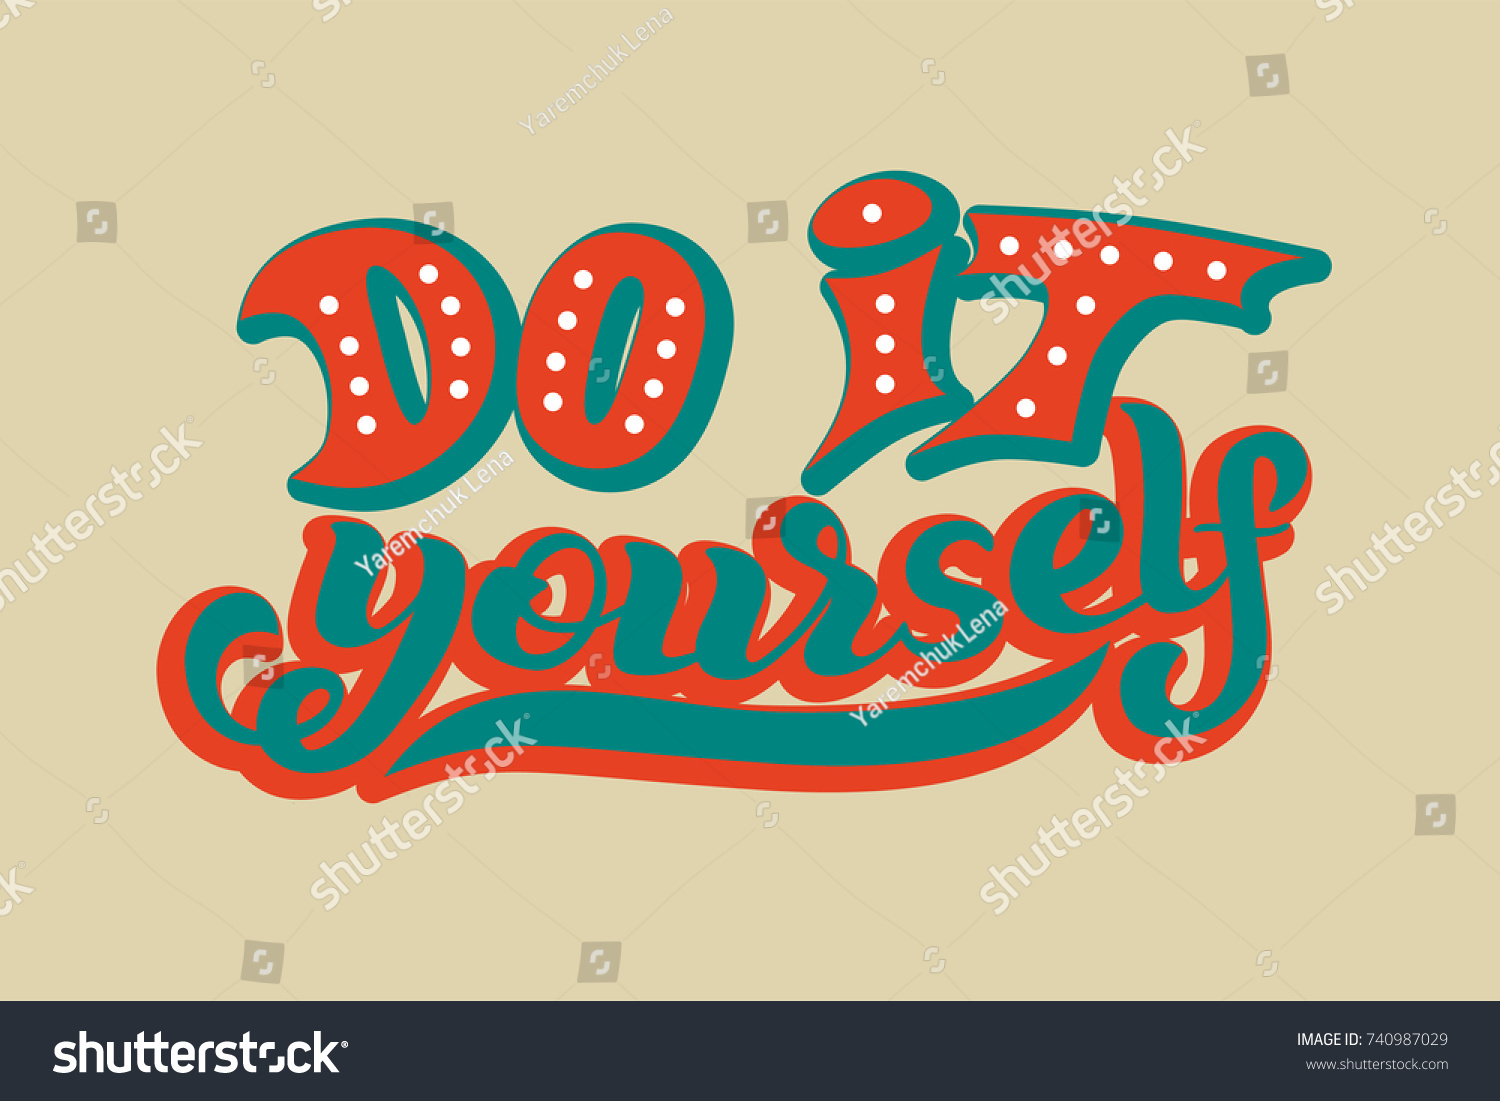 Hand lettering phrase do yourself diy stock vector 740987029 hand lettering phrase do it yourself diy inspirational quote text background solutioingenieria Gallery